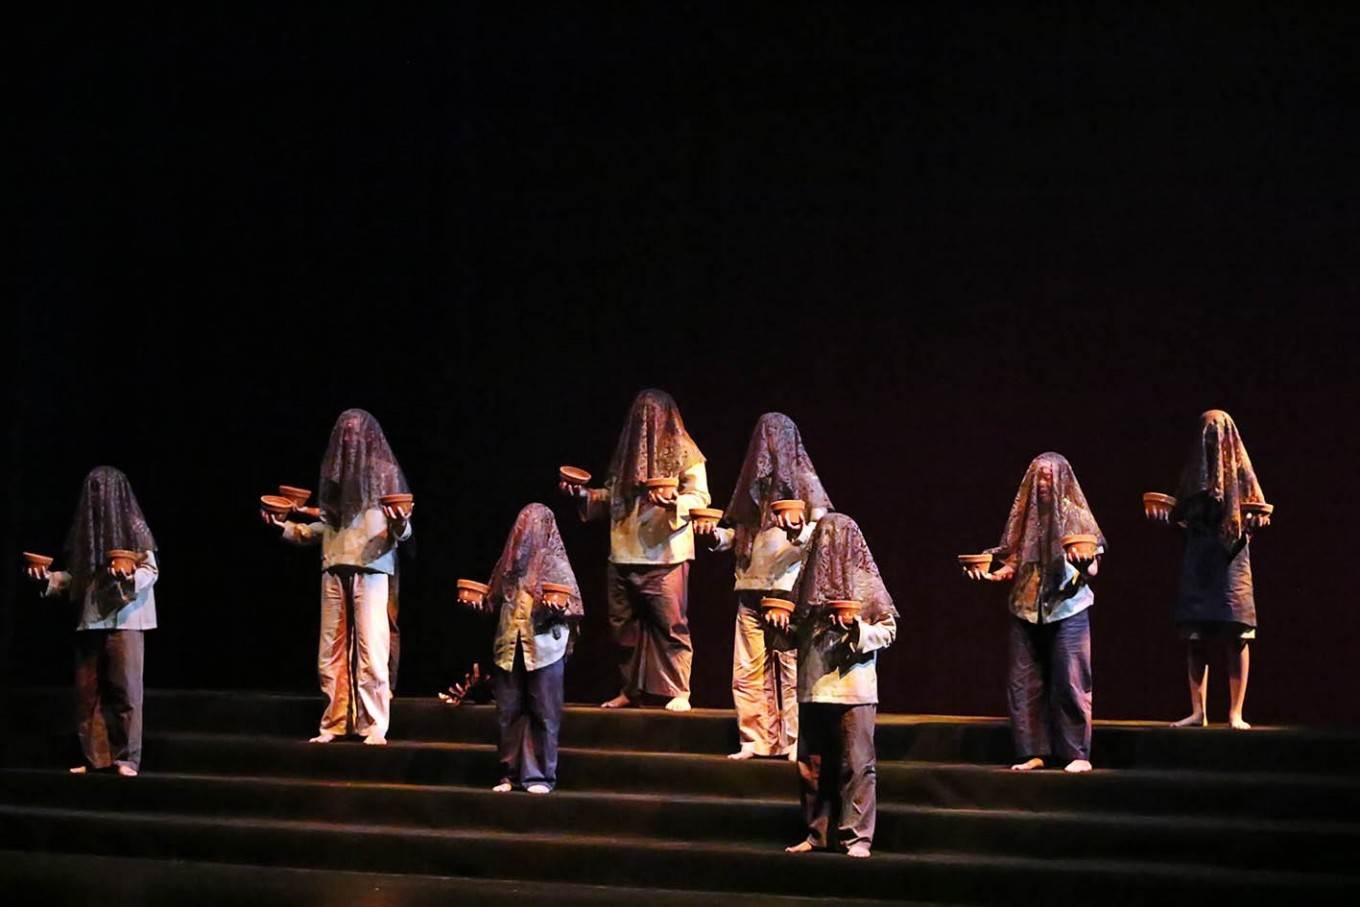 Shakespeare-inspired dance performance presents silence on stage